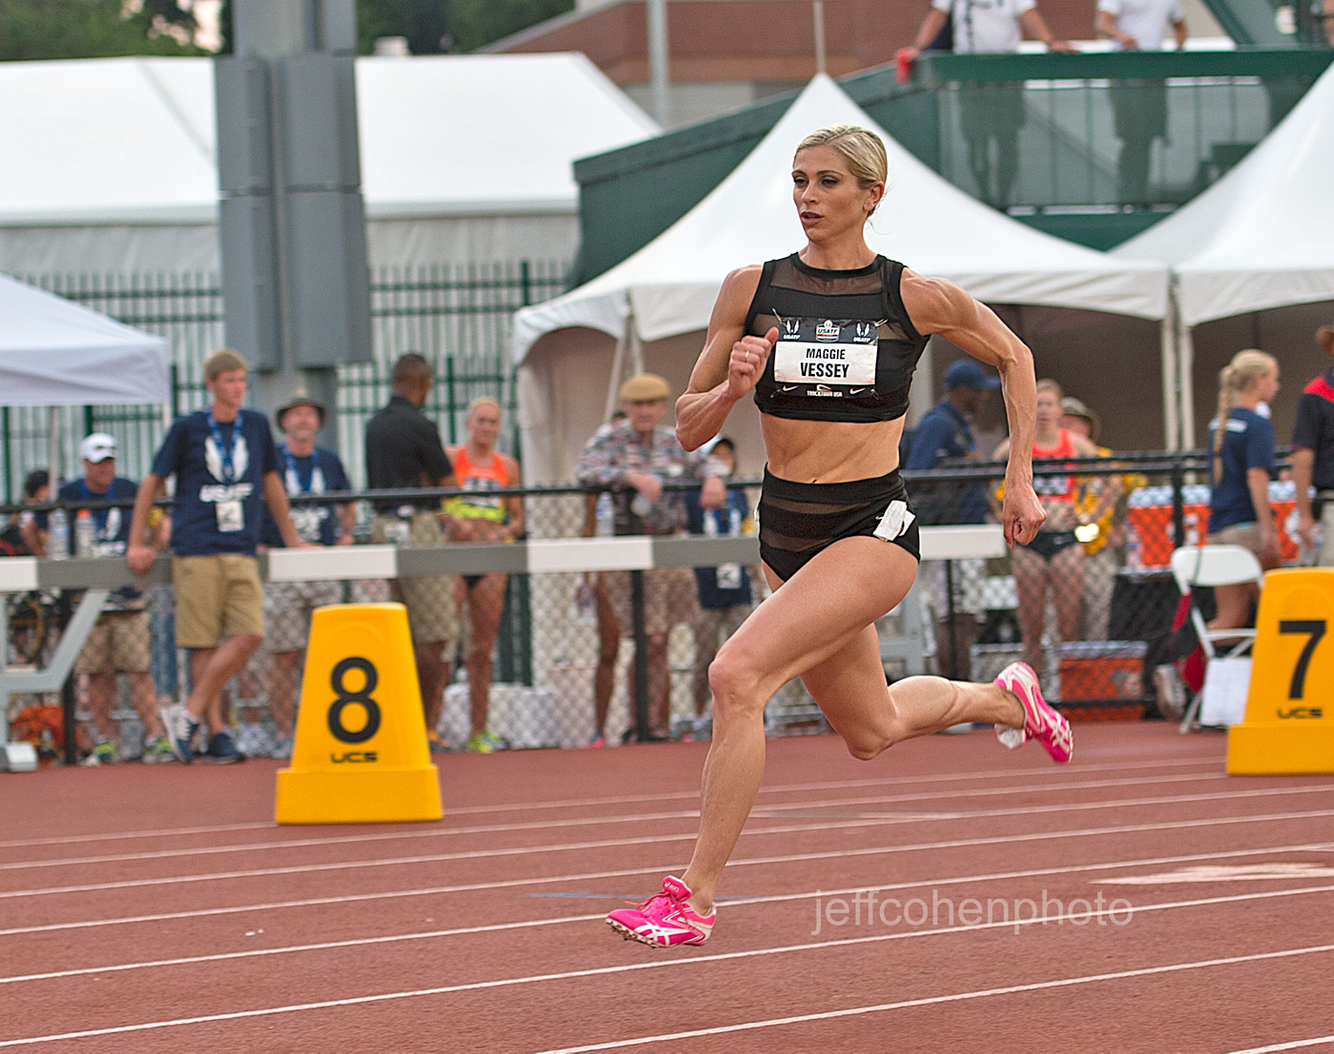 1r2015_usaoutdoors_maggie_vessey_880mw__jeff_cohen3267_web.jpg